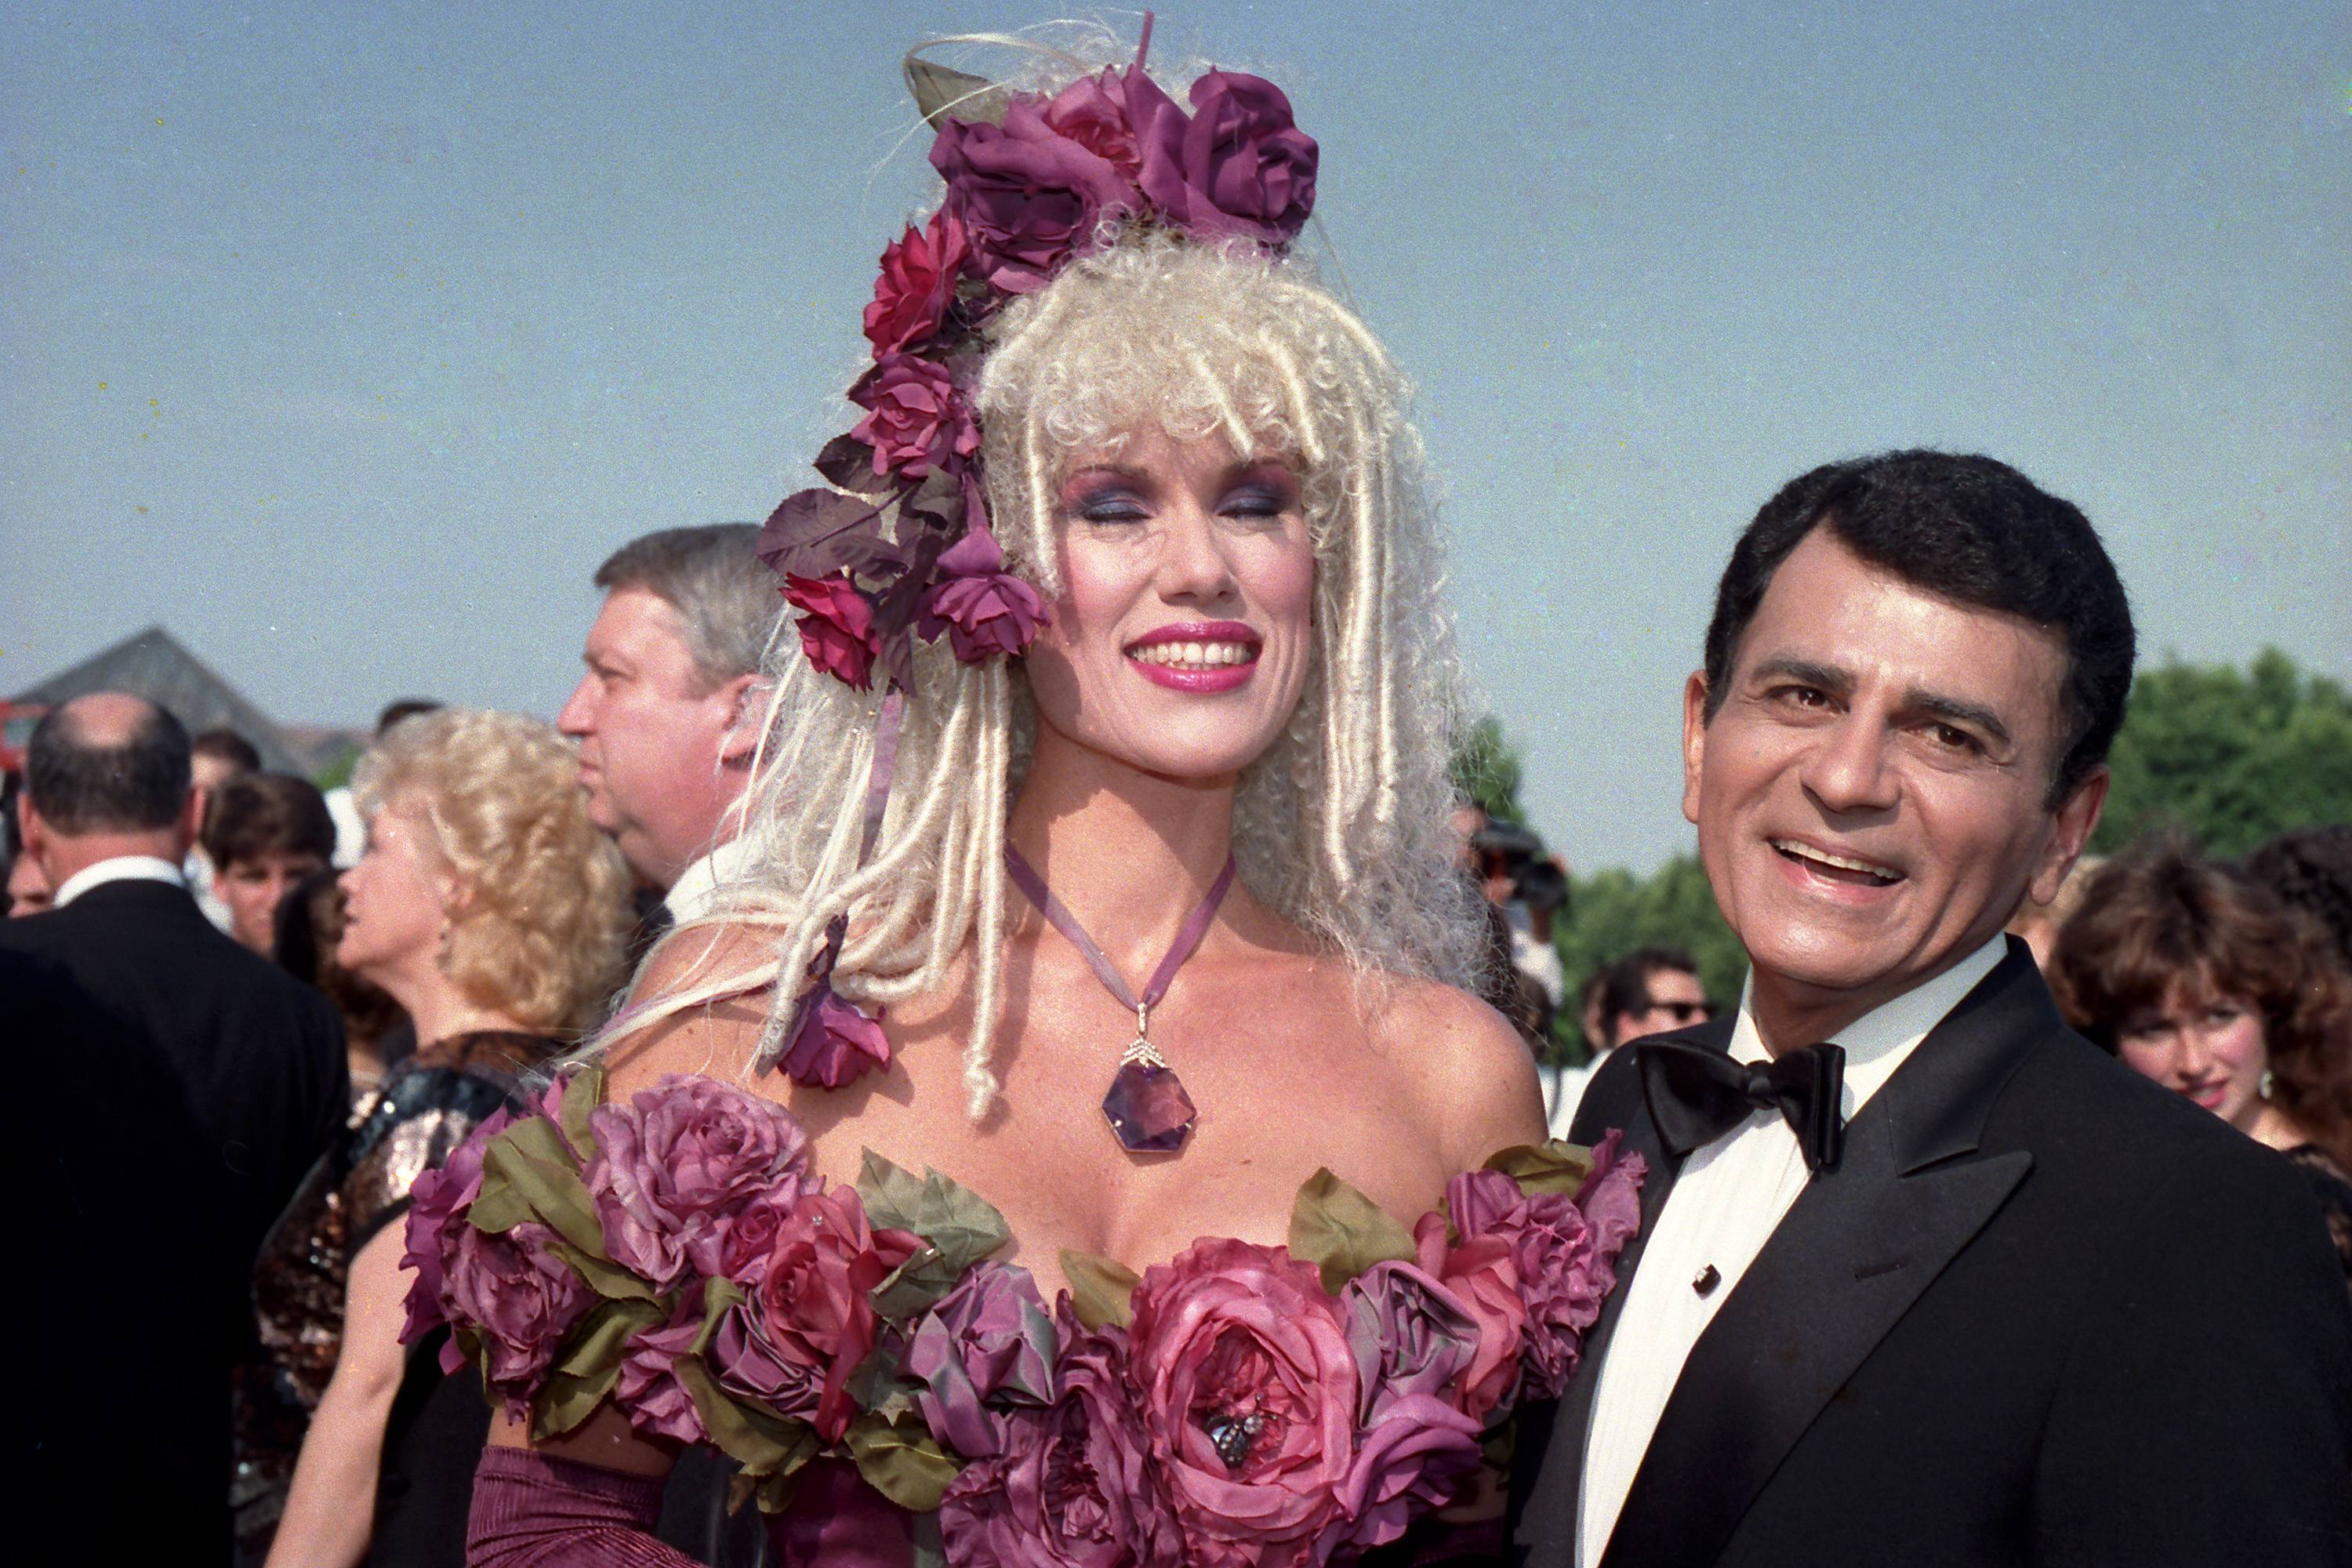 In this Sept. 20, 1987, file photo, Casey Kasem, along with his wife Jean Kasem, arrives at the Emmy Awards in Los Angeles. Kasem, the smooth-voiced radio broadcaster who became the king of the top 40 countdown, died Sunday.